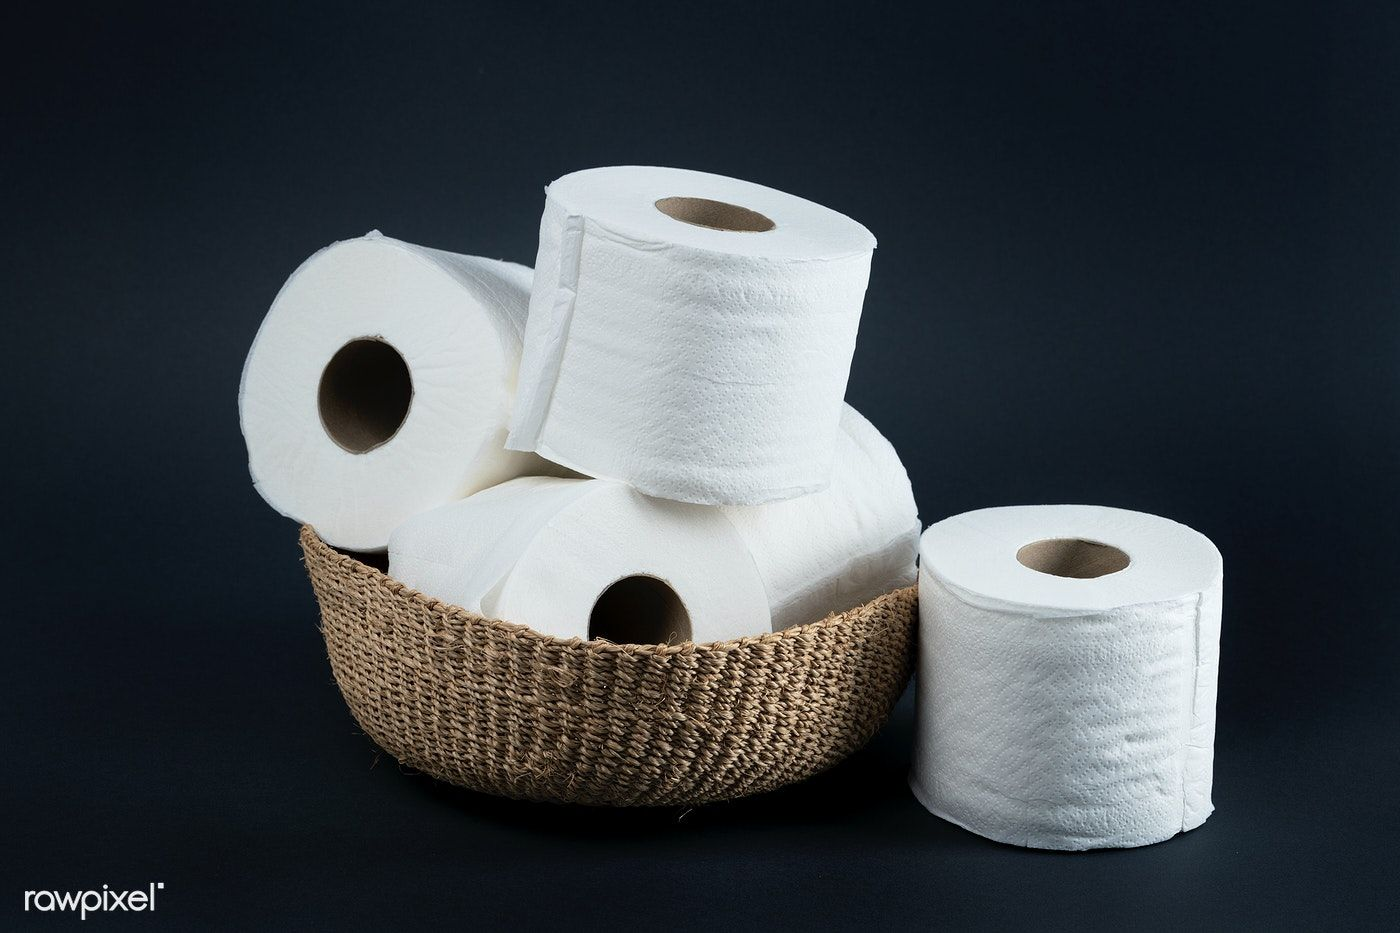 Stack Of Toilet Paper Free Image By Rawpixel Com Teddy Rawpixel In 2020 Toilet Paper Paper Backdrops Backgrounds